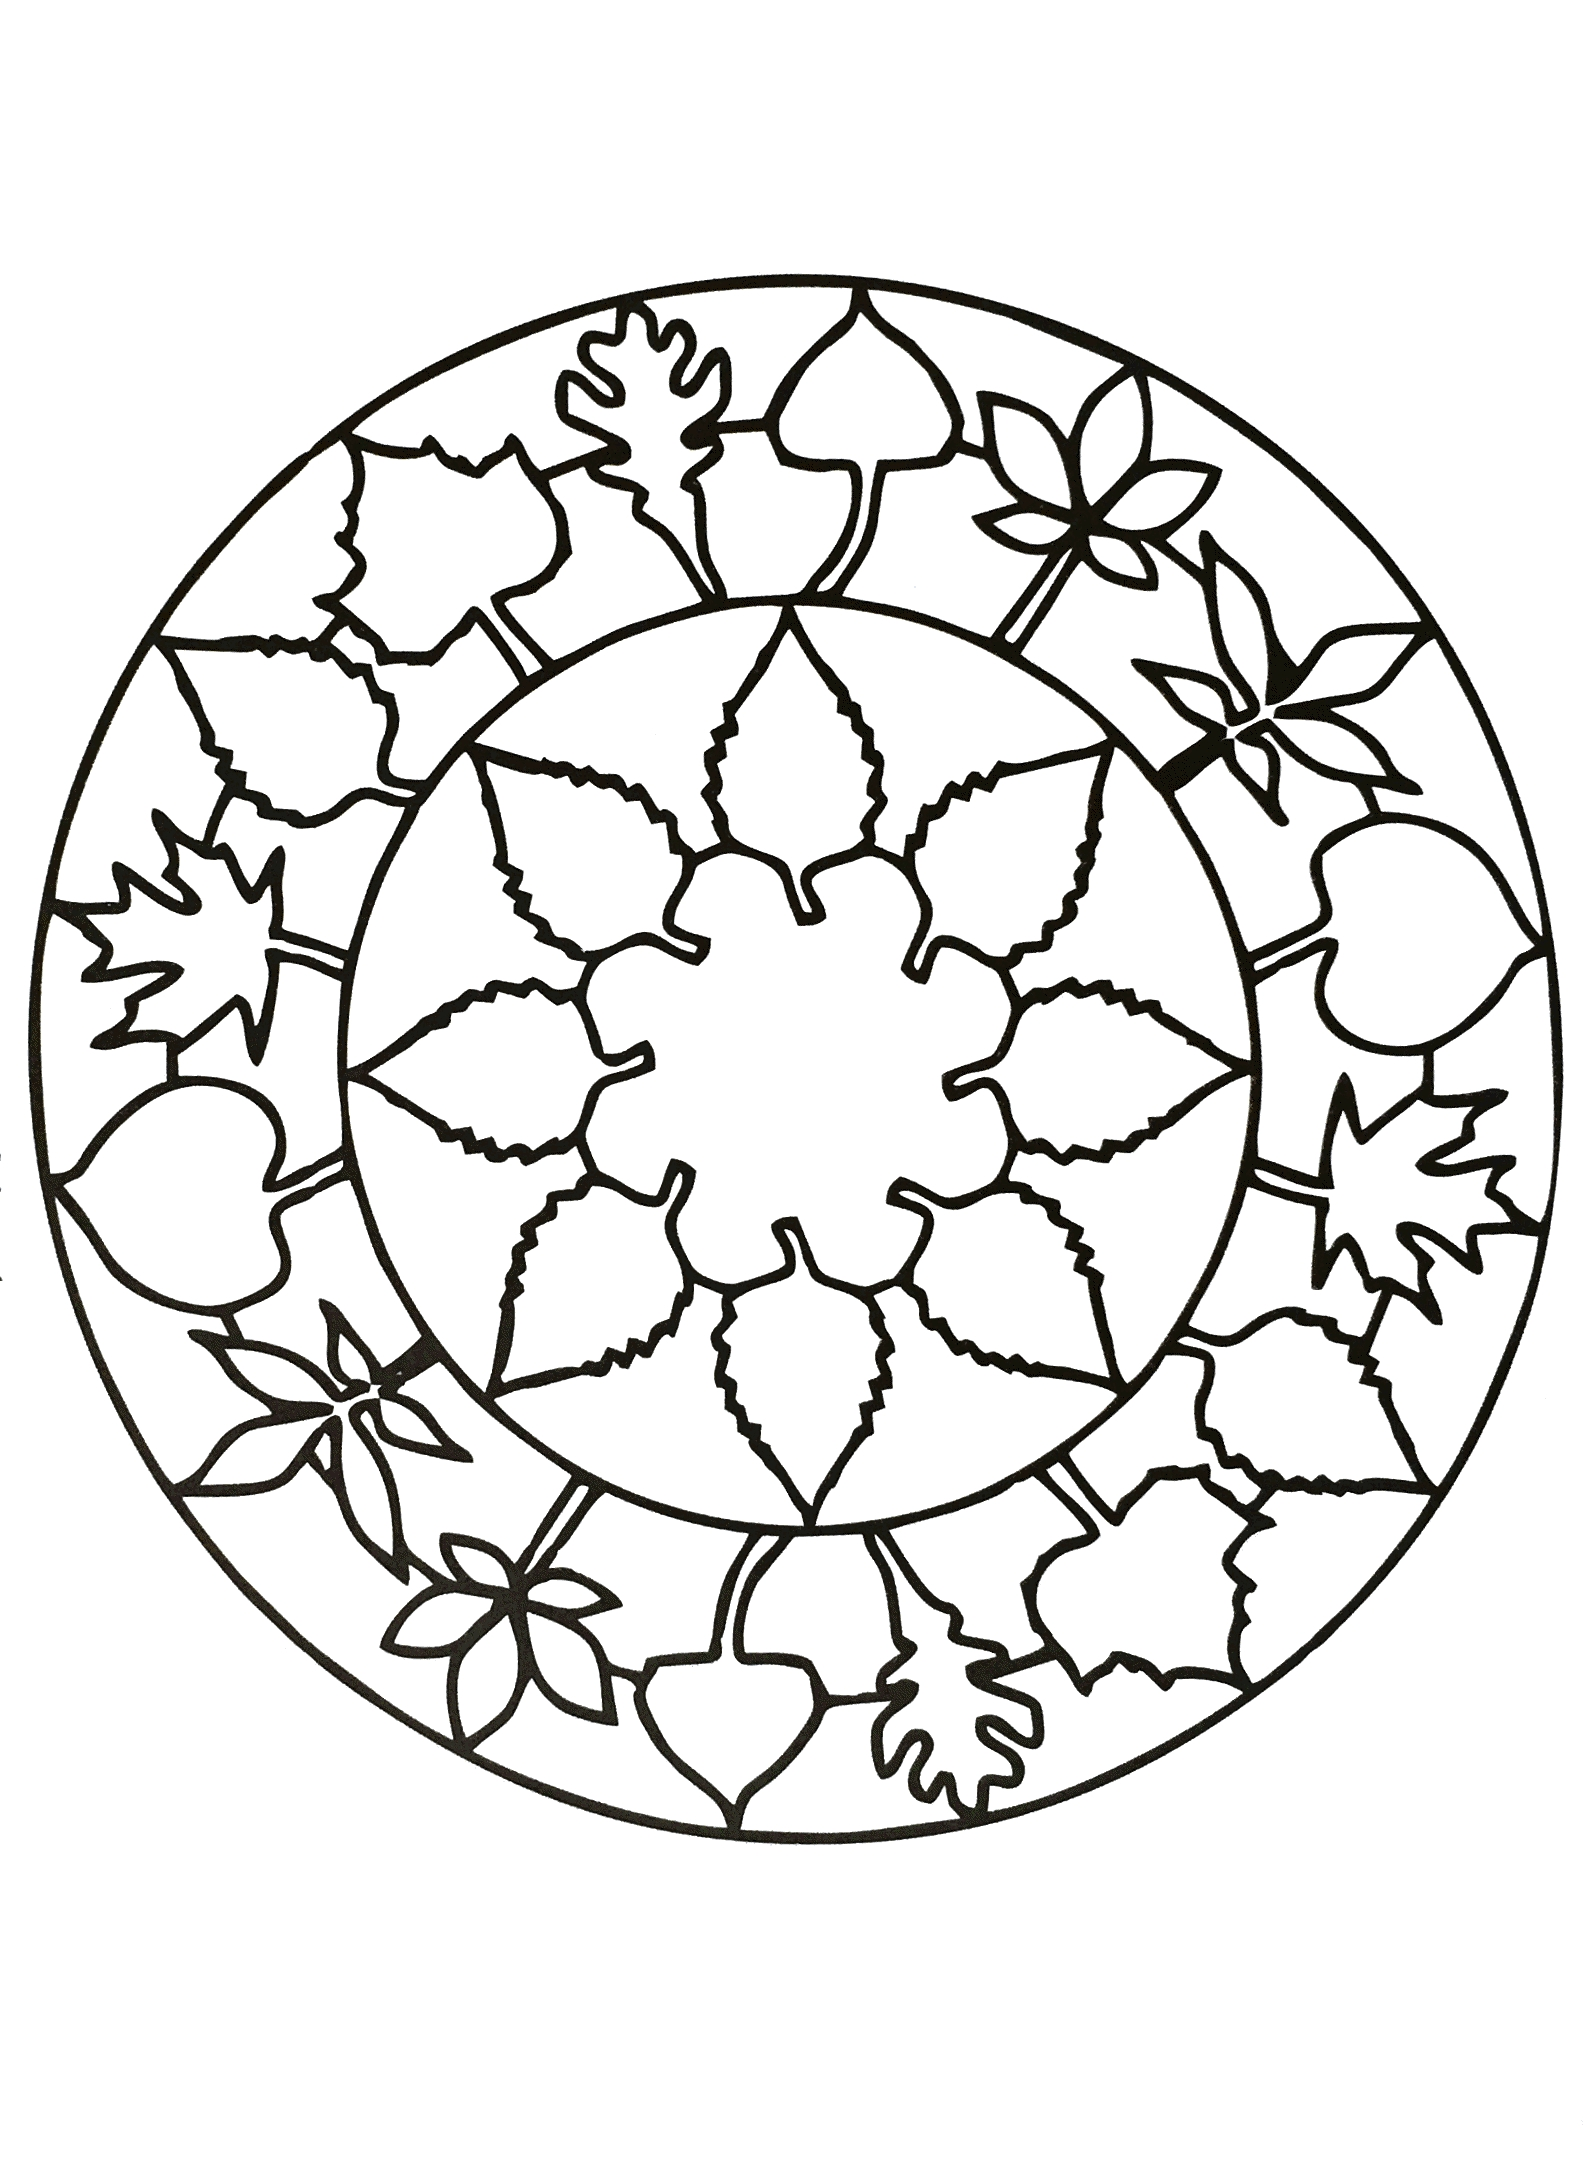 flower coloring pages for adults - image=flowers ve ation mandala flower 3